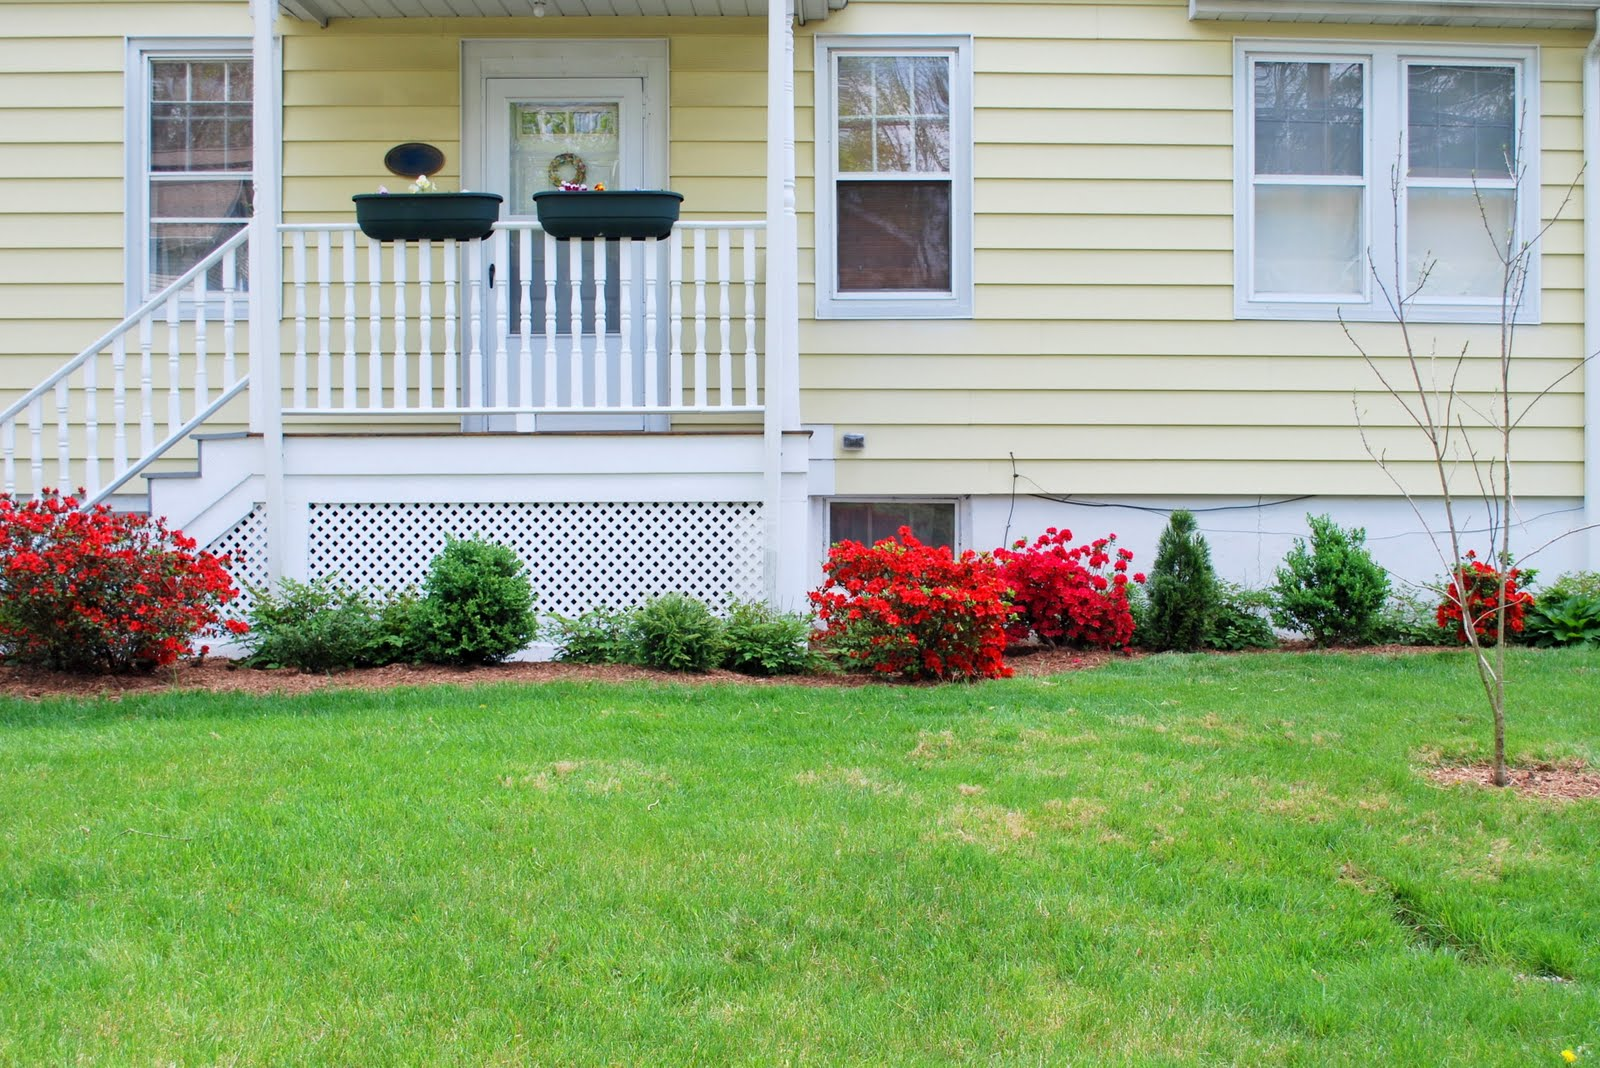 In the Little Yellow House: Mulching the Front Yard